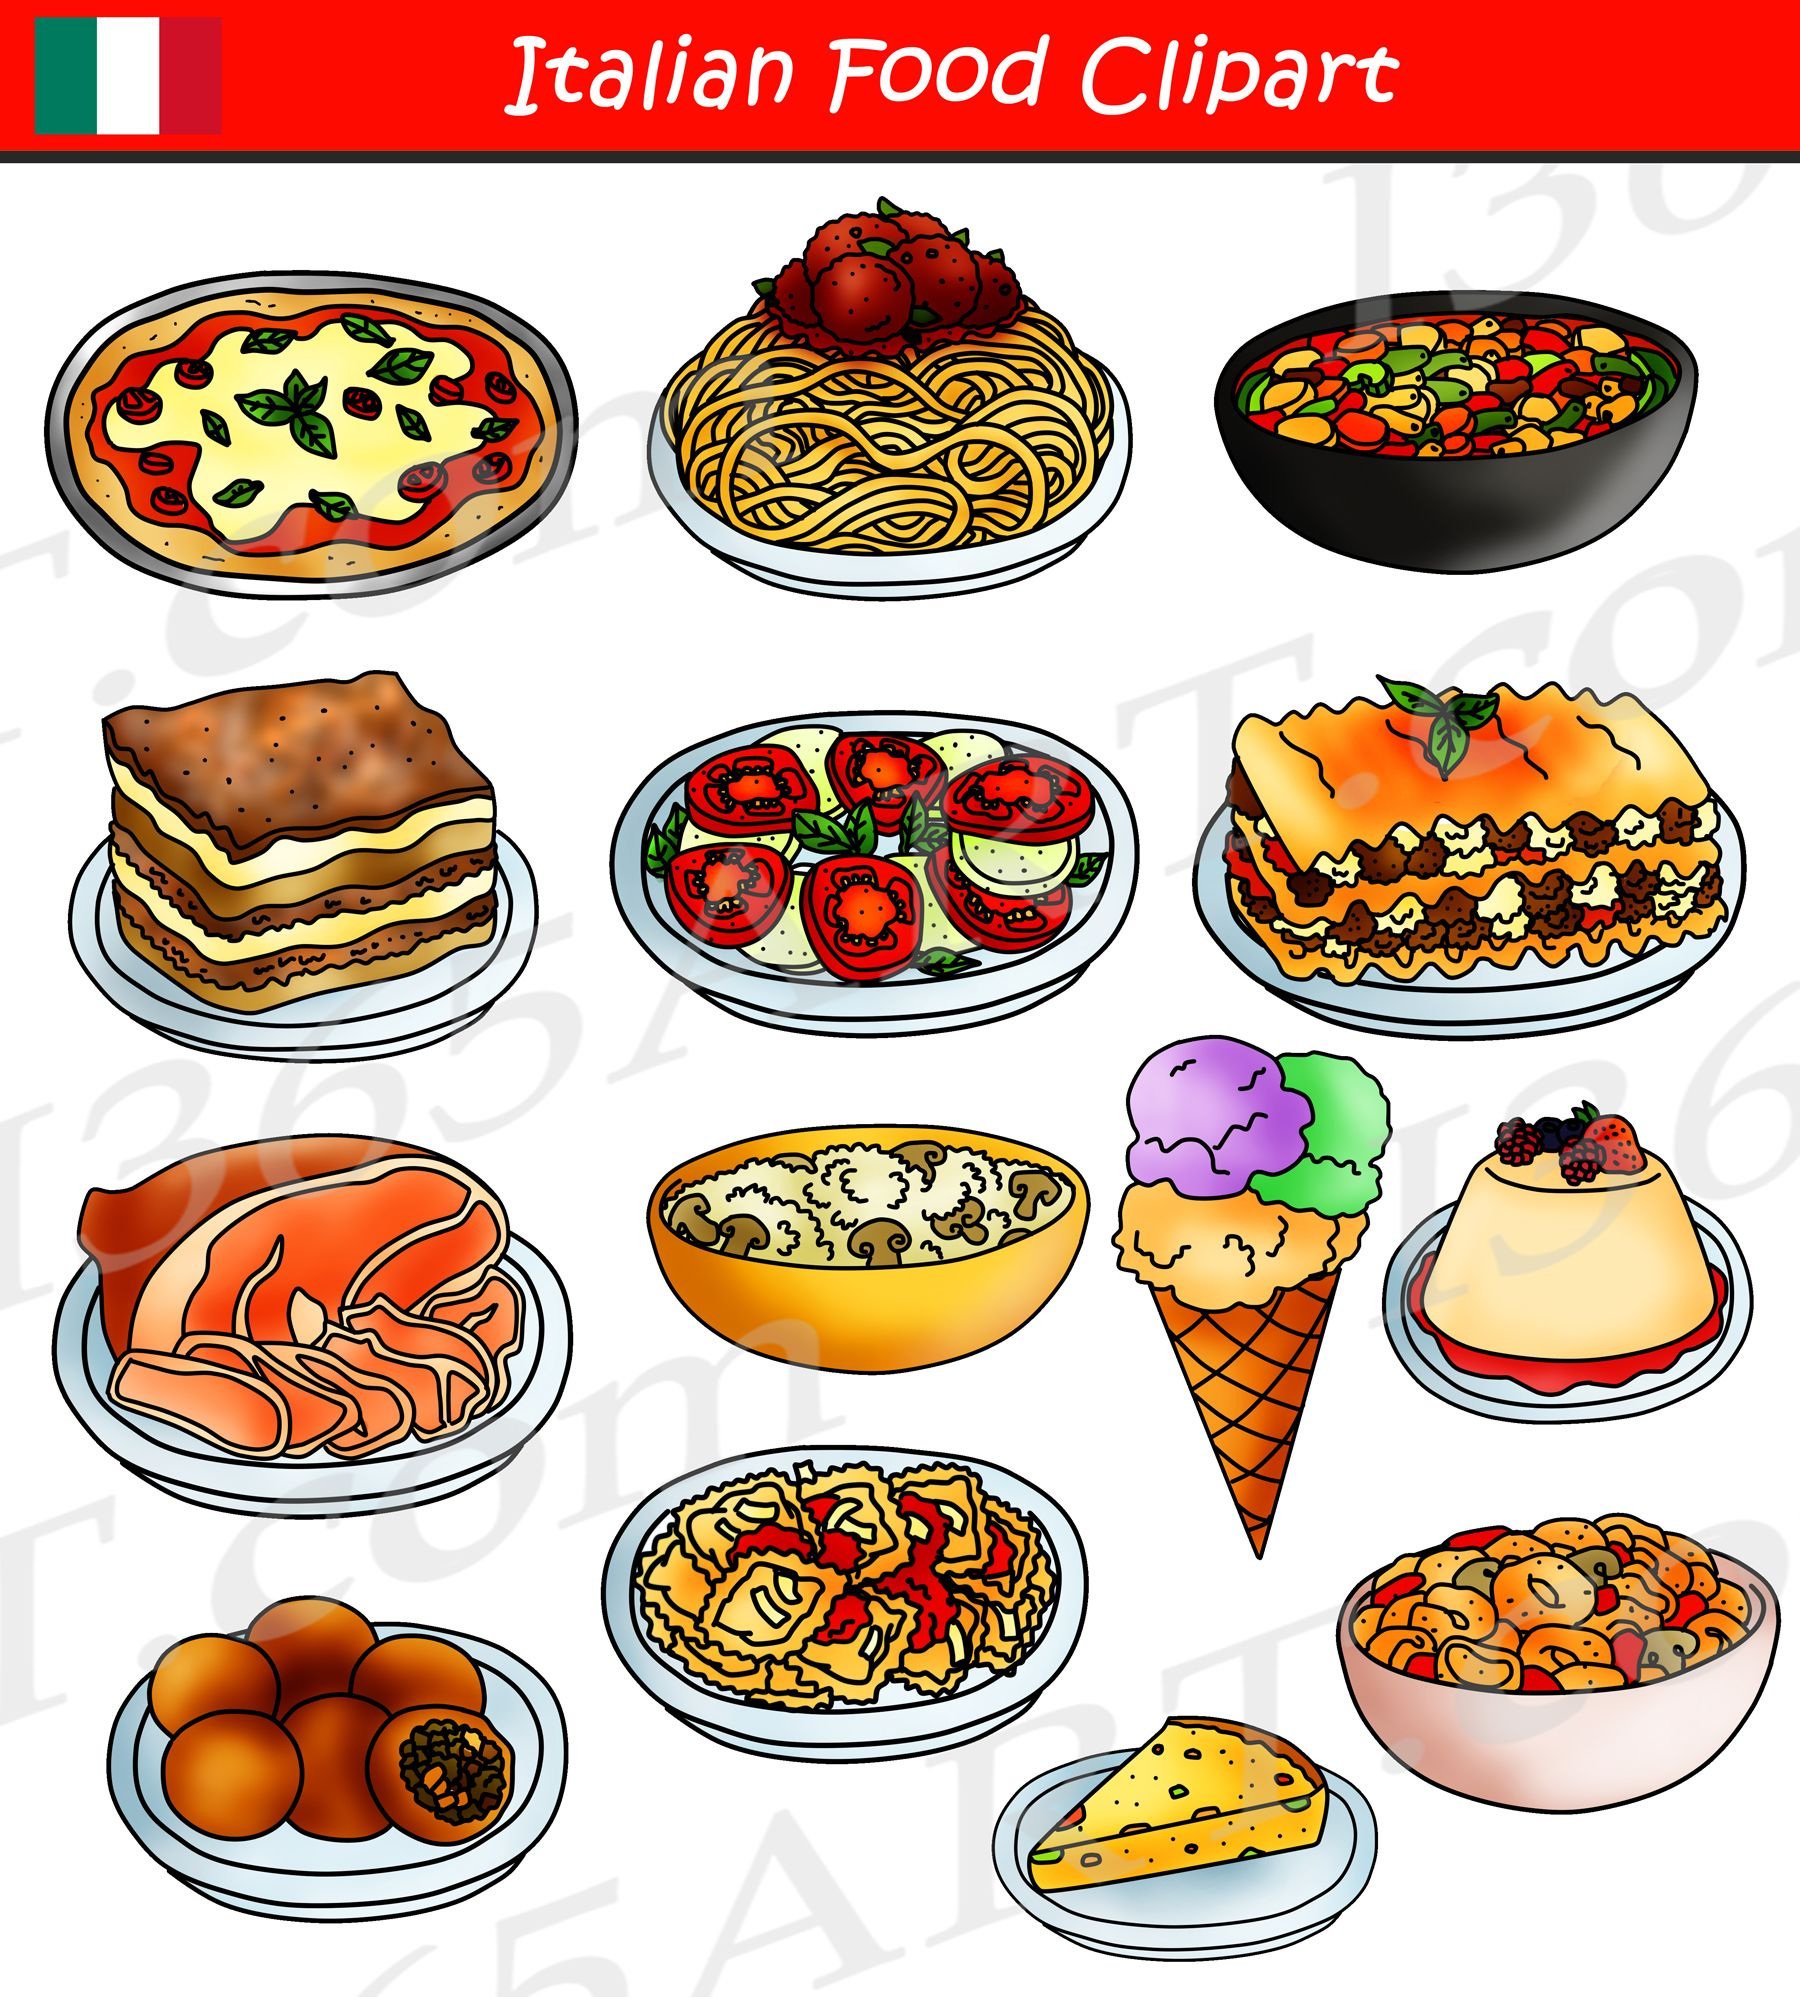 Food dinner. Italian clipart international graphics